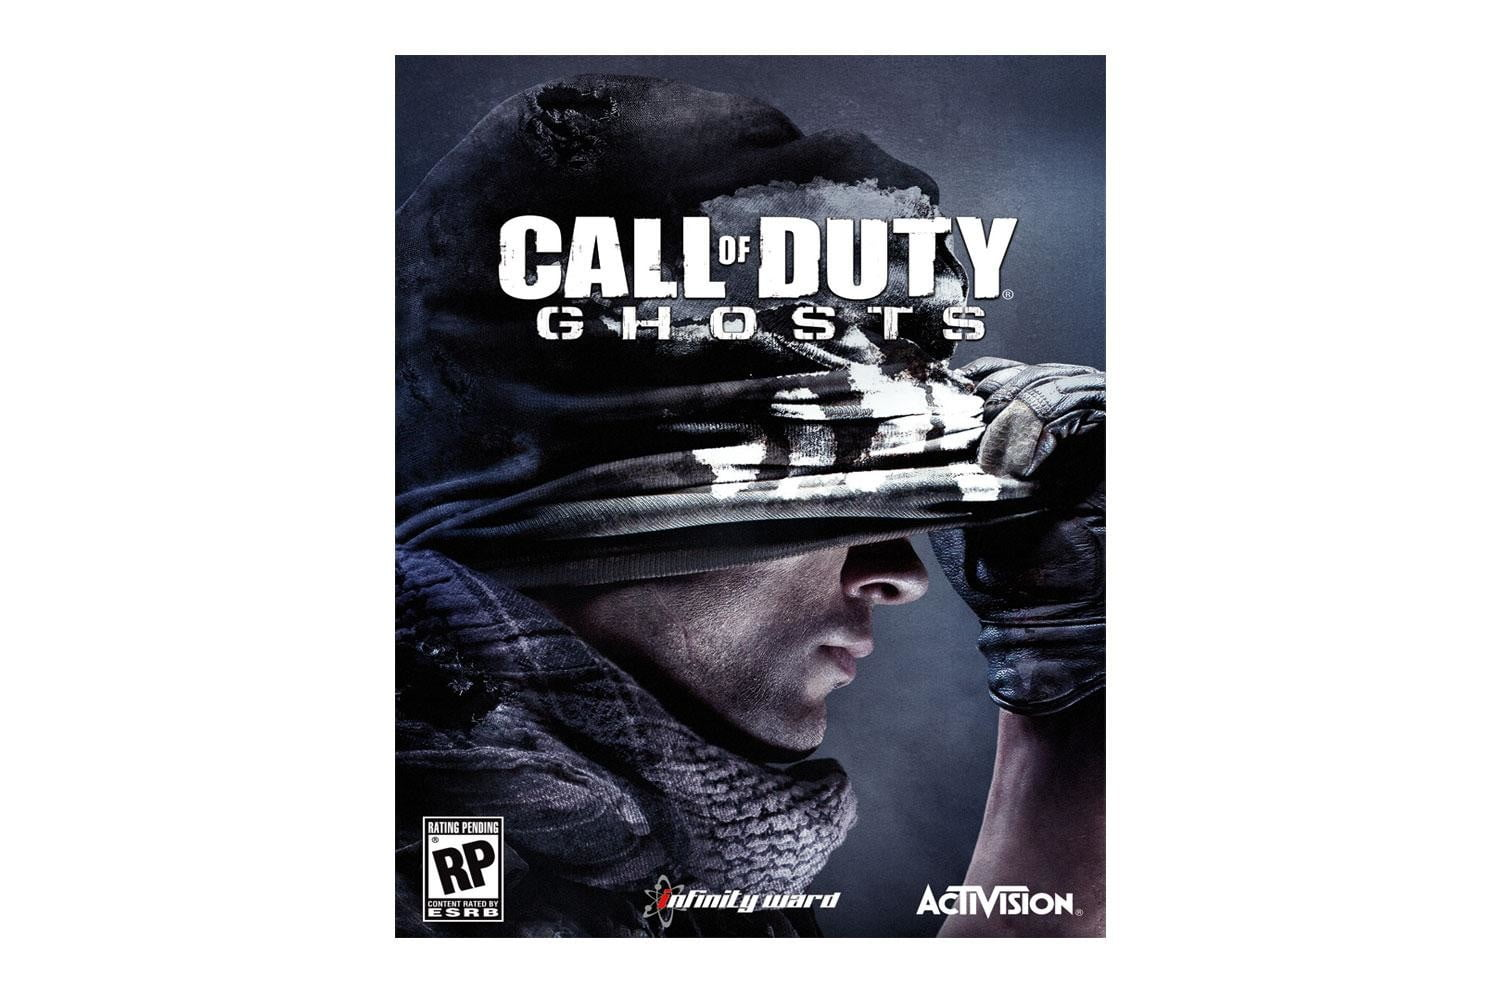 Call-of-Duty-Ghosts-cover-art